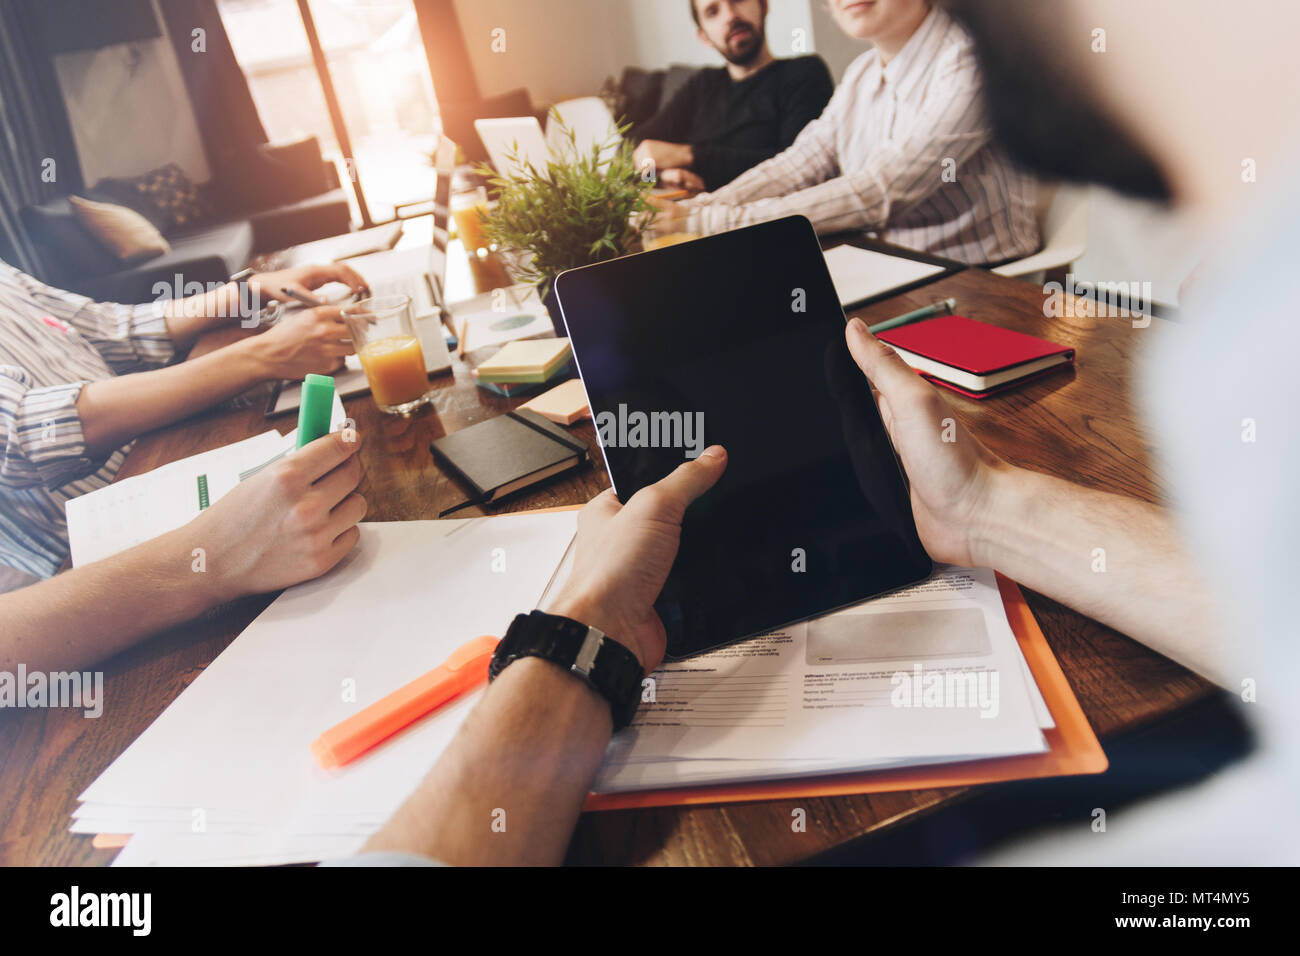 Man holds touch tablet in his hand and discusses with coworkers a new business plan. POV view of male hands holds modern tablet on background of woode Stock Photo